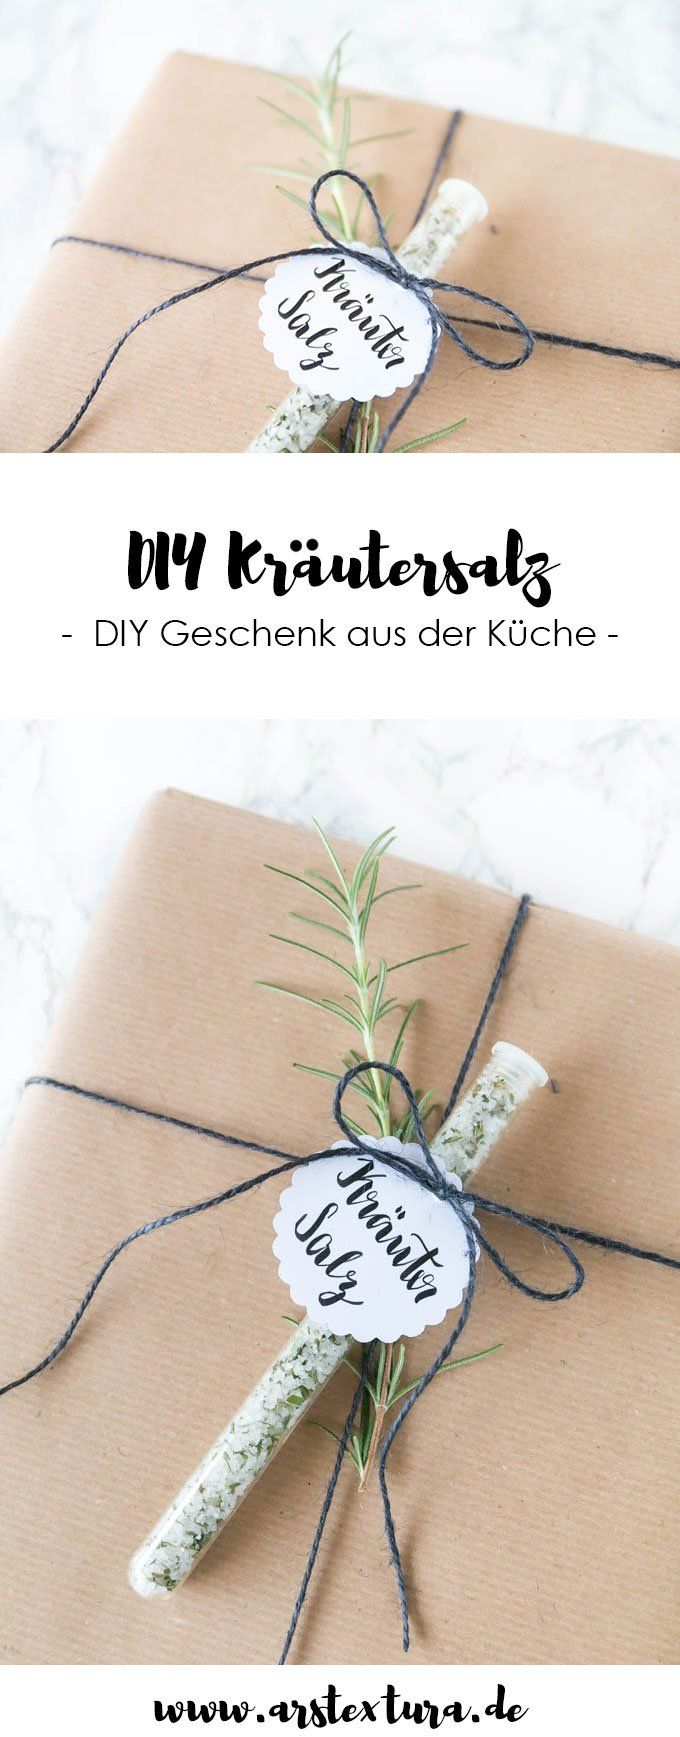 diy kr utersalz selber machen geschenke aus der k che gruppenboard pinterest kr utersalz. Black Bedroom Furniture Sets. Home Design Ideas